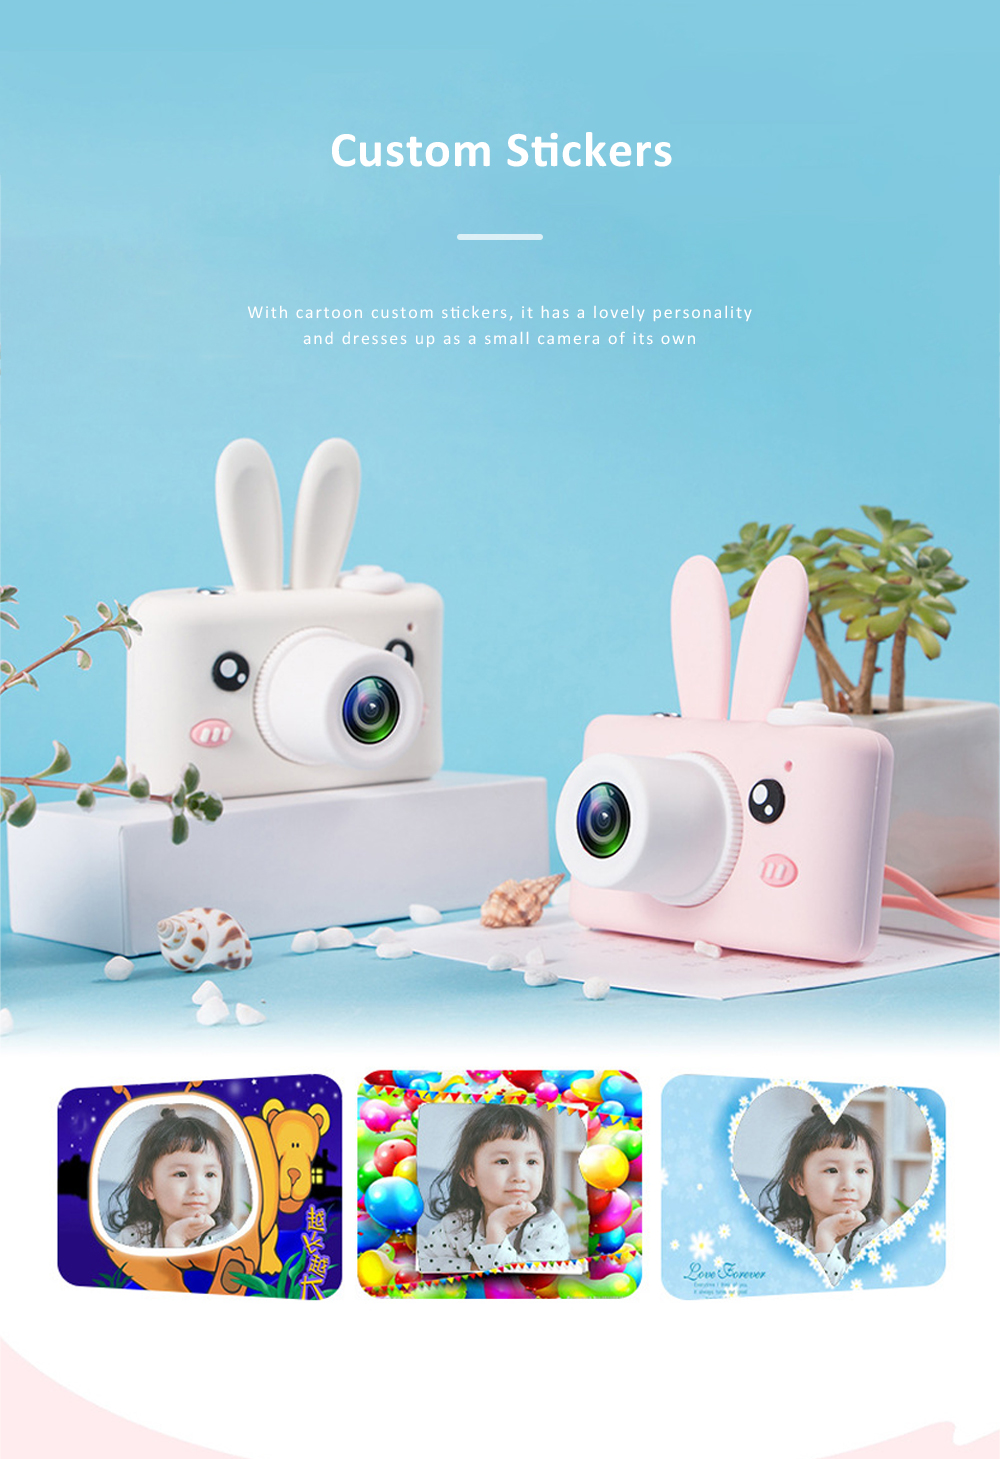 2inch HD Screen Electronic Camera For Kids Children Creative Digital Camera Tft Display Video Recording Kids Camera With Silicone Soft Cover 6